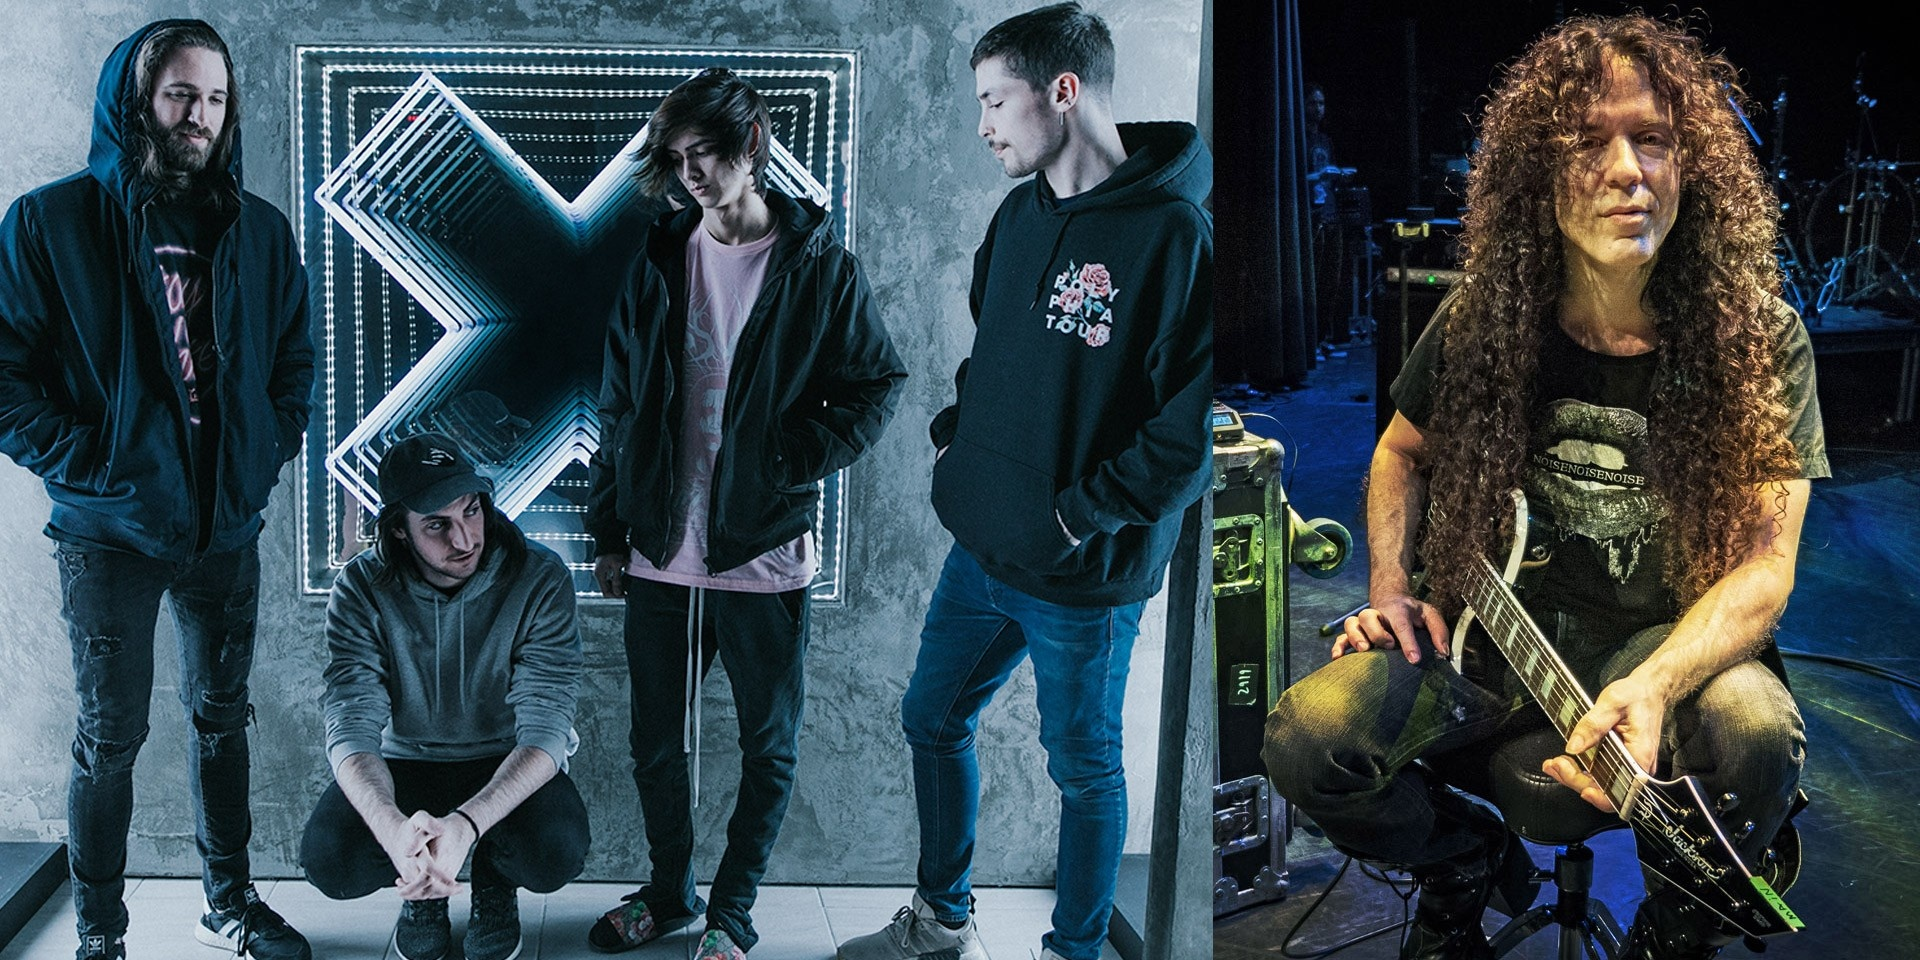 Polyphia & Marty Friedman to hold one-night concert in Manila